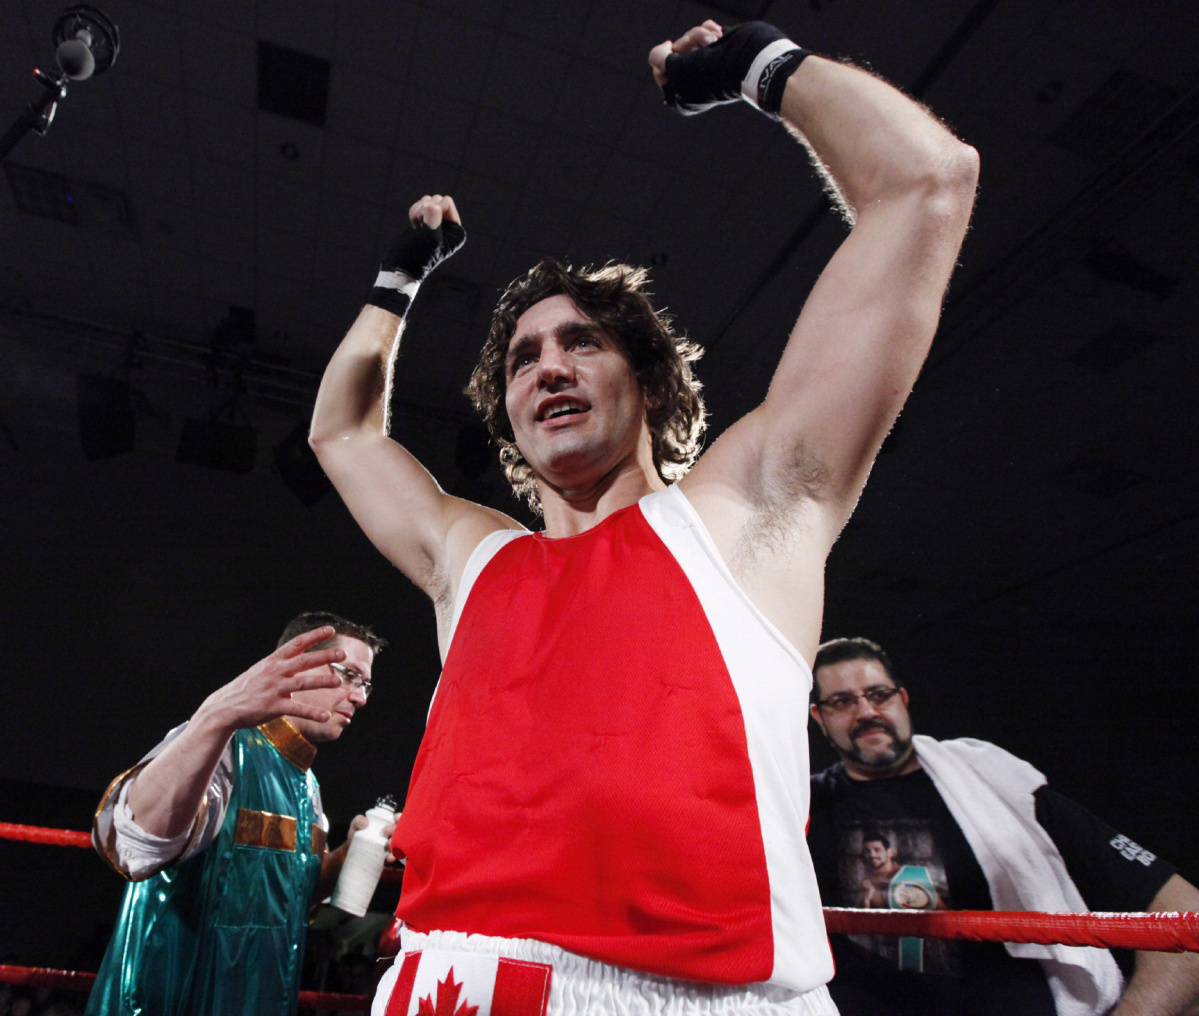 Liberal MP Justin Trudeau raise his arms after he defeated Conservative Senator Patrick Brazeau during charity boxing match for cancer research Saturday, March 31, 2012 in Ottawa . THE CANADIAN PRESS/Fred Chartrand